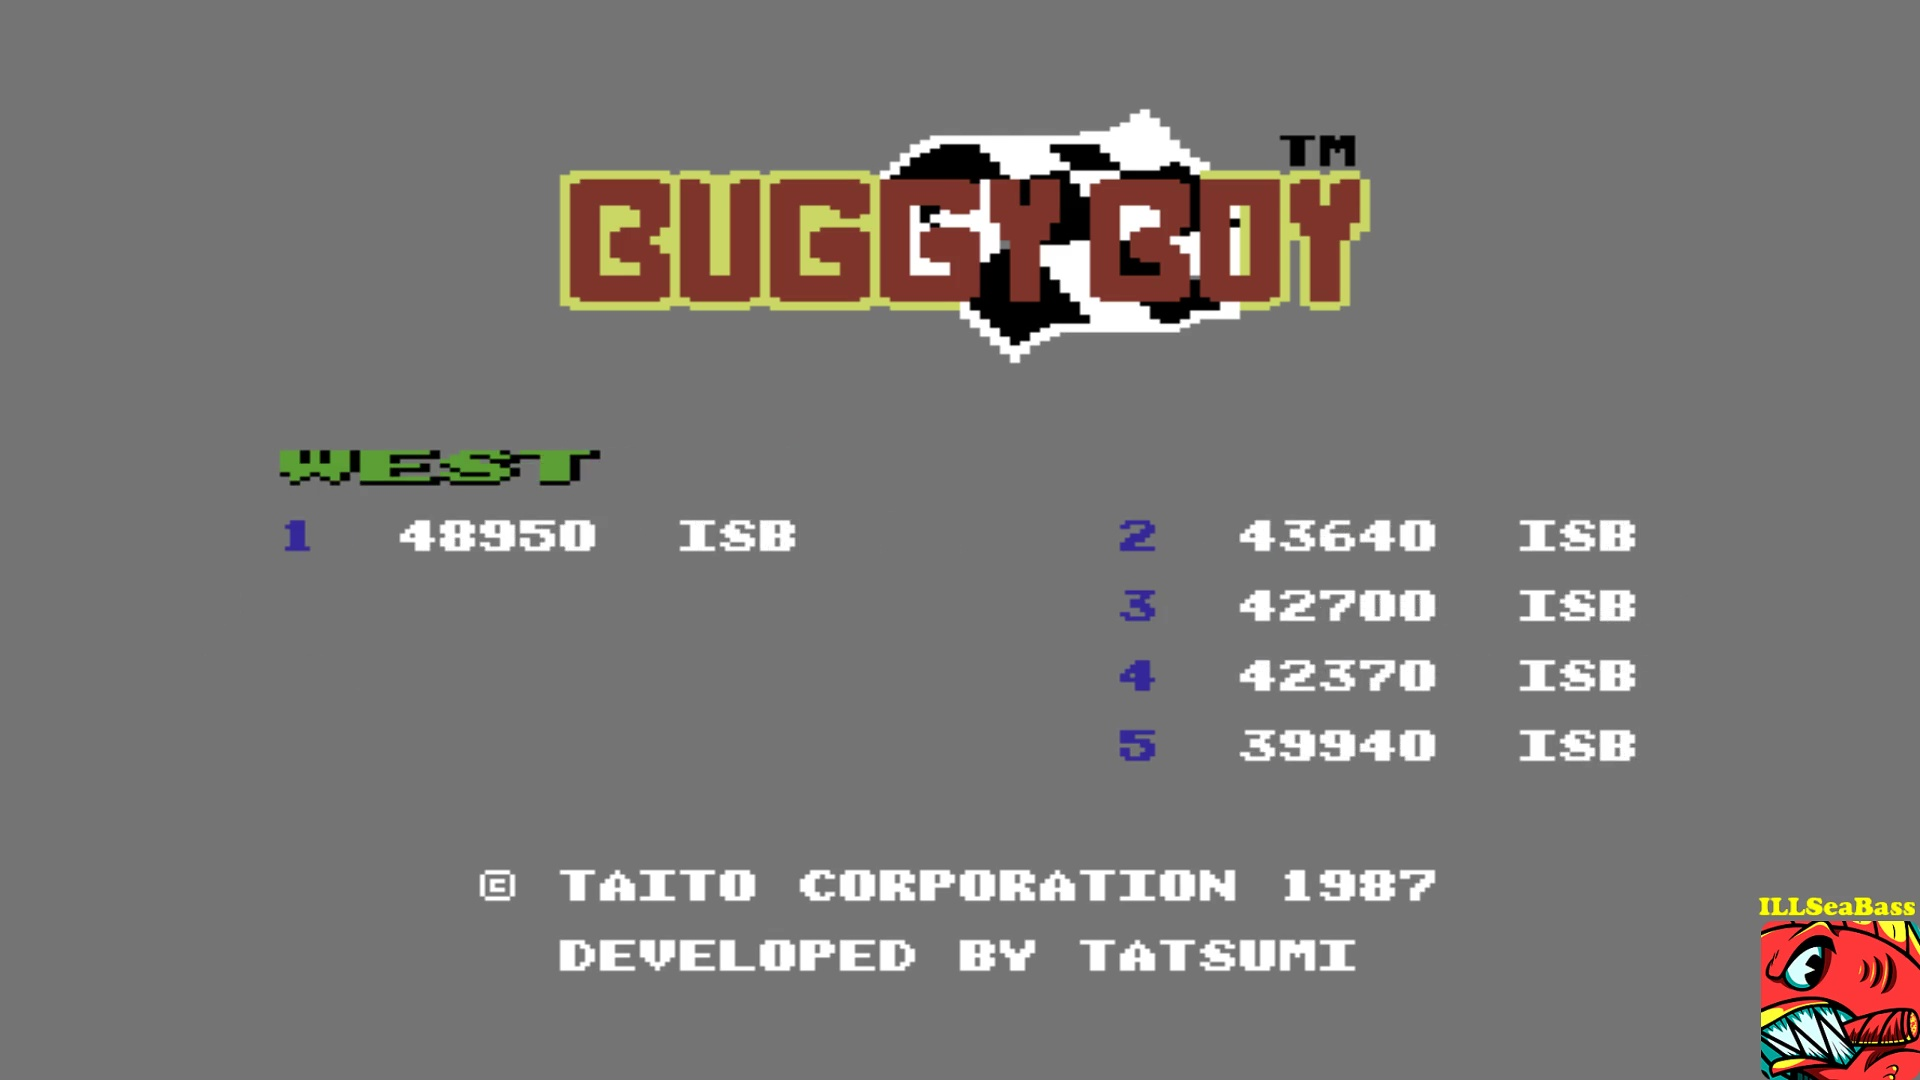 ILLSeaBass: Buggy Boy: West (Commodore 64 Emulated) 48,950 points on 2017-10-21 14:47:28